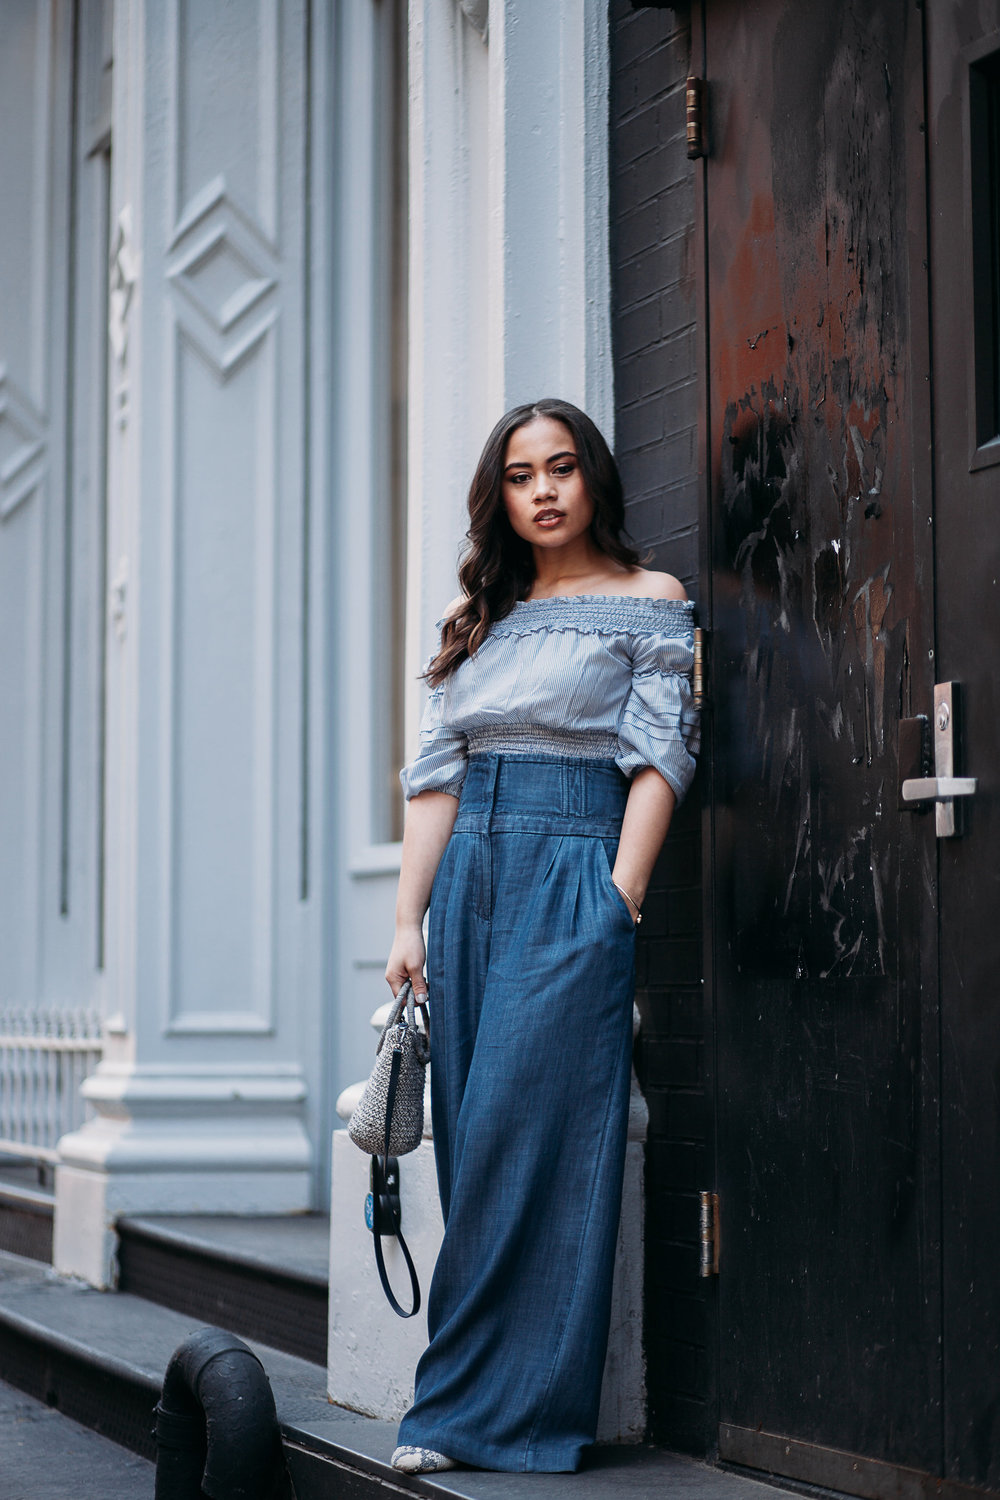 STYLING DENIM WIDE LEG PANTS WITH GABRIELLE UNION PANTS FROM NEW YORK AND COMPANY. OFF OF THE SHOULDER TRIP TOP BY MAX LONDON AND MINI BAG BY ZARA